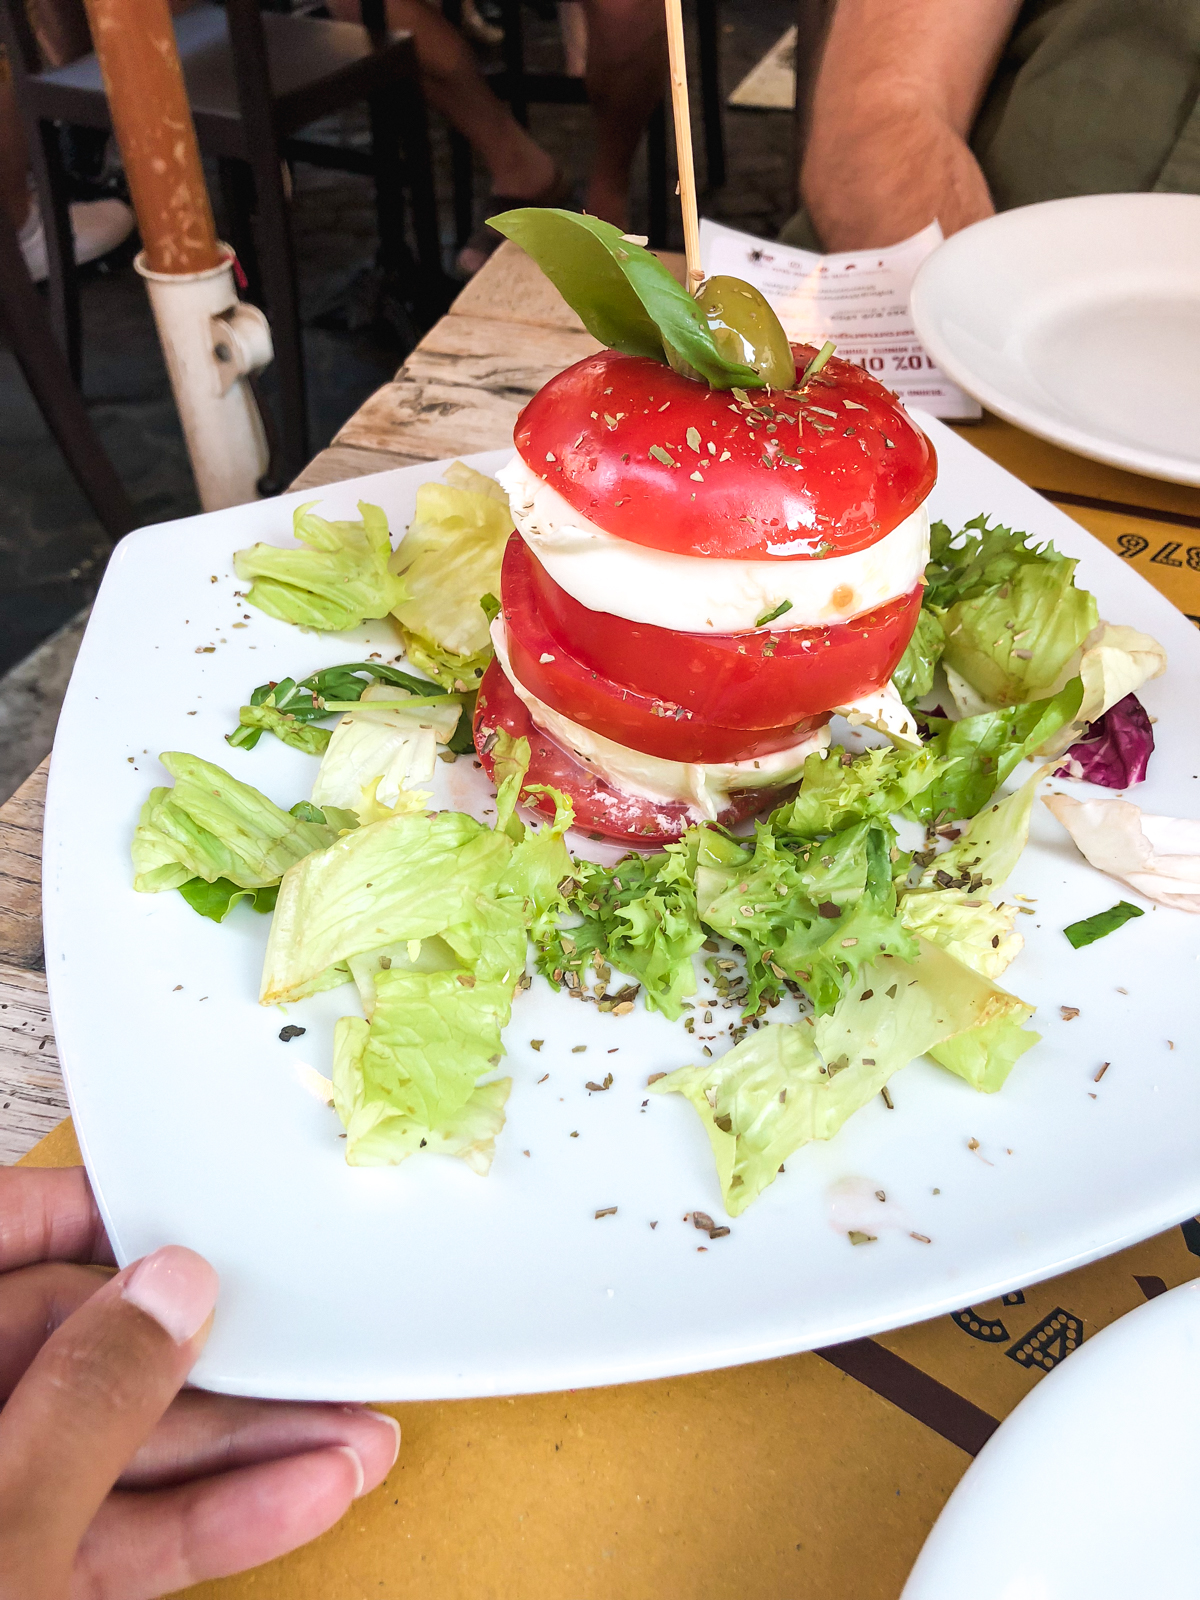 tomato and mozzarella salad from Tonnarello